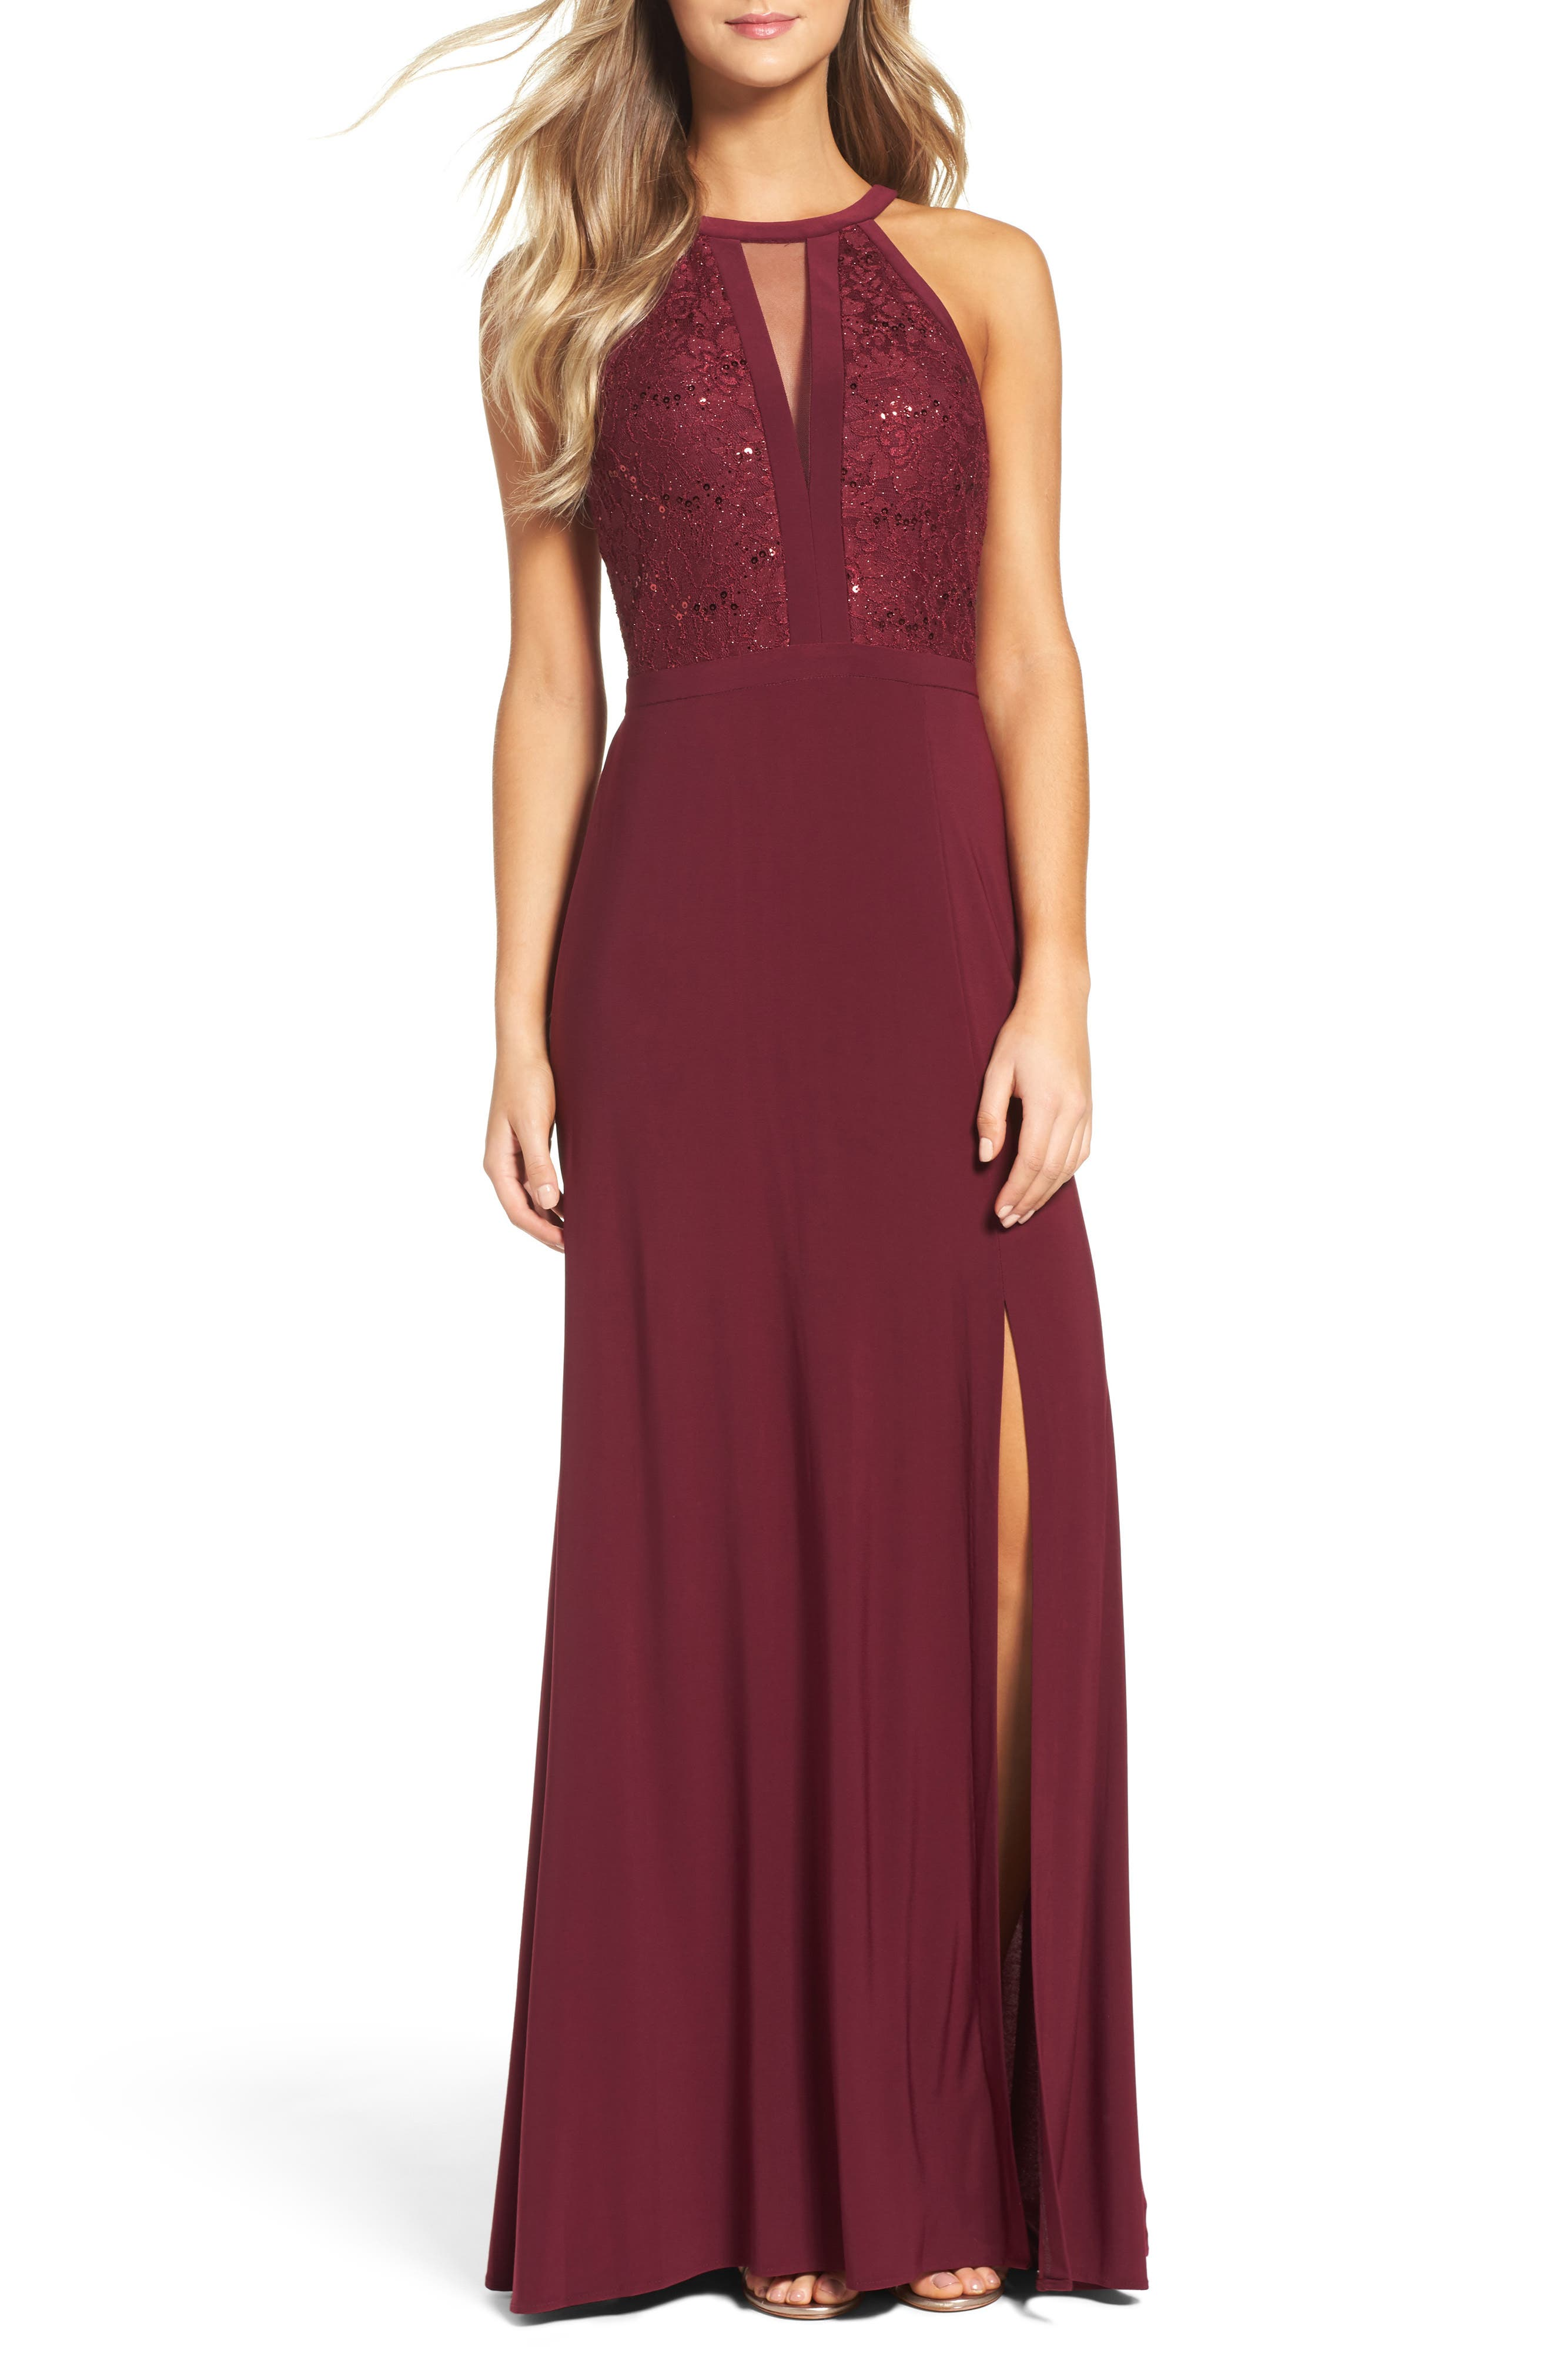 Morgan & Co. Lace & Jersey Gown, /14 - Red